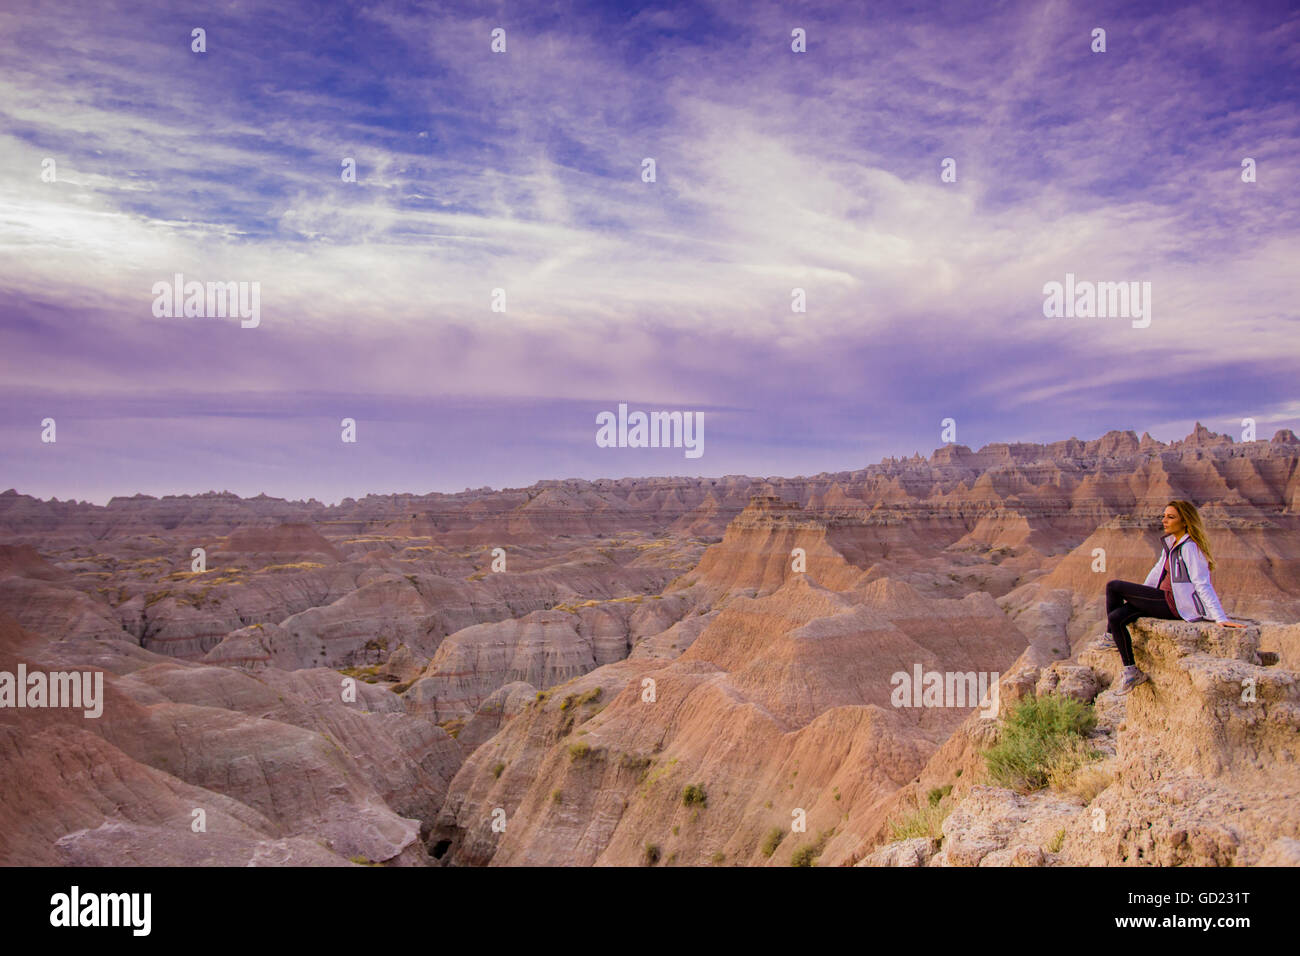 Laura Grier at sunrise at The Badlands, Black Hills, South Dakota, United States of America, North America - Stock Image